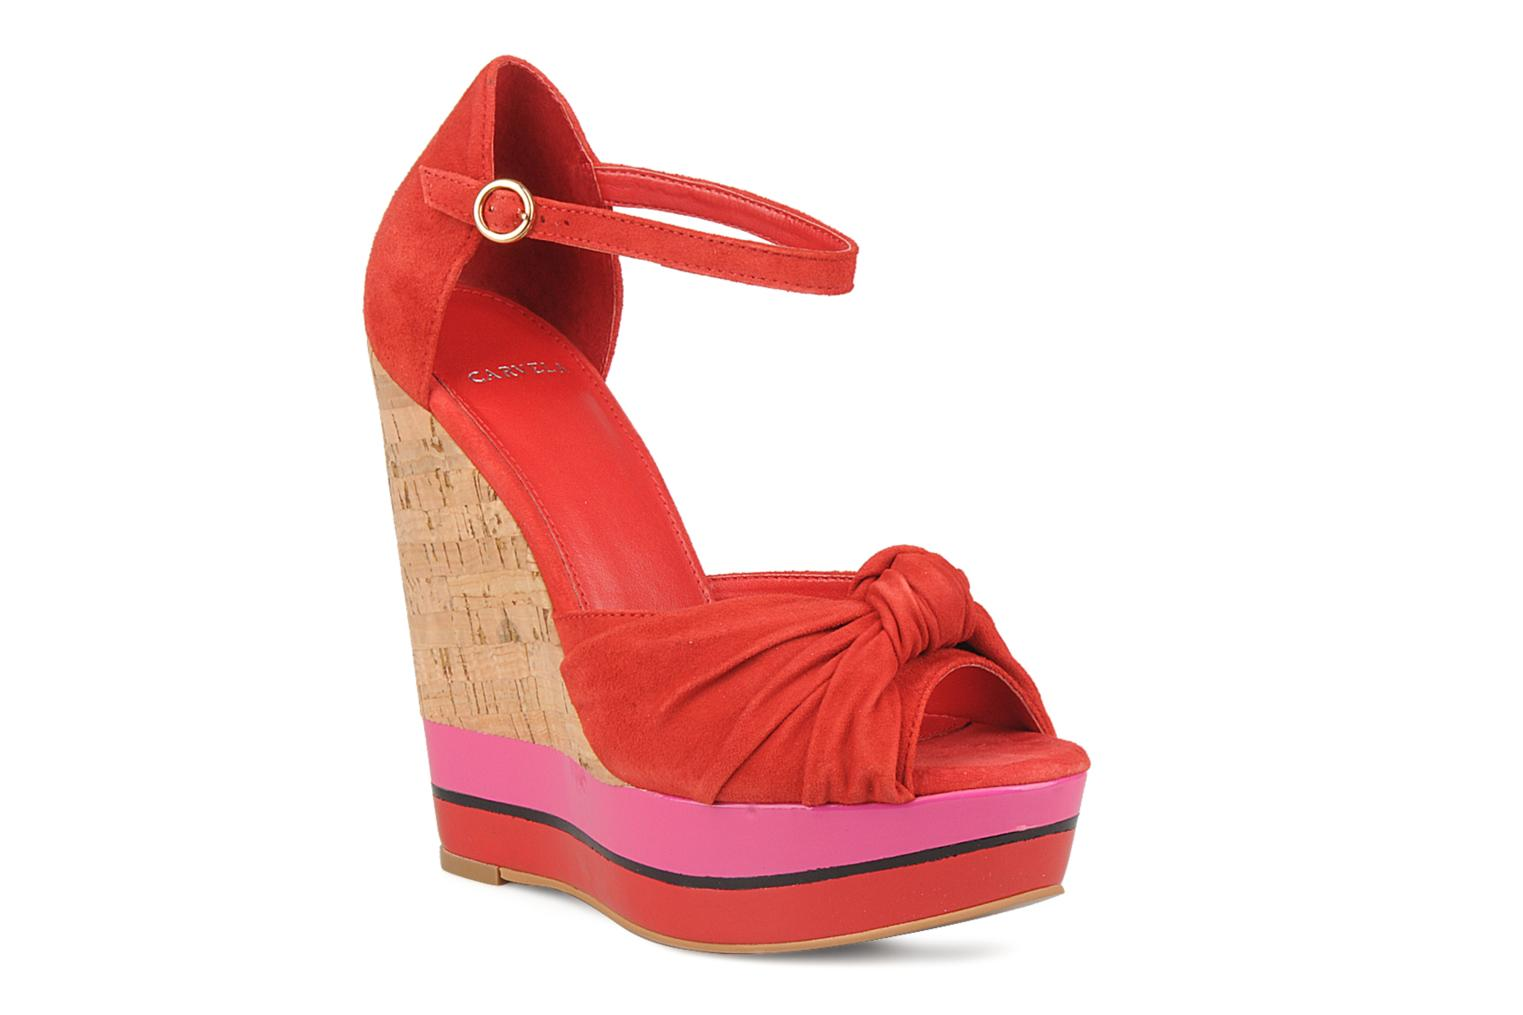 Marques Chaussure femme Carvela femme Kennis Red